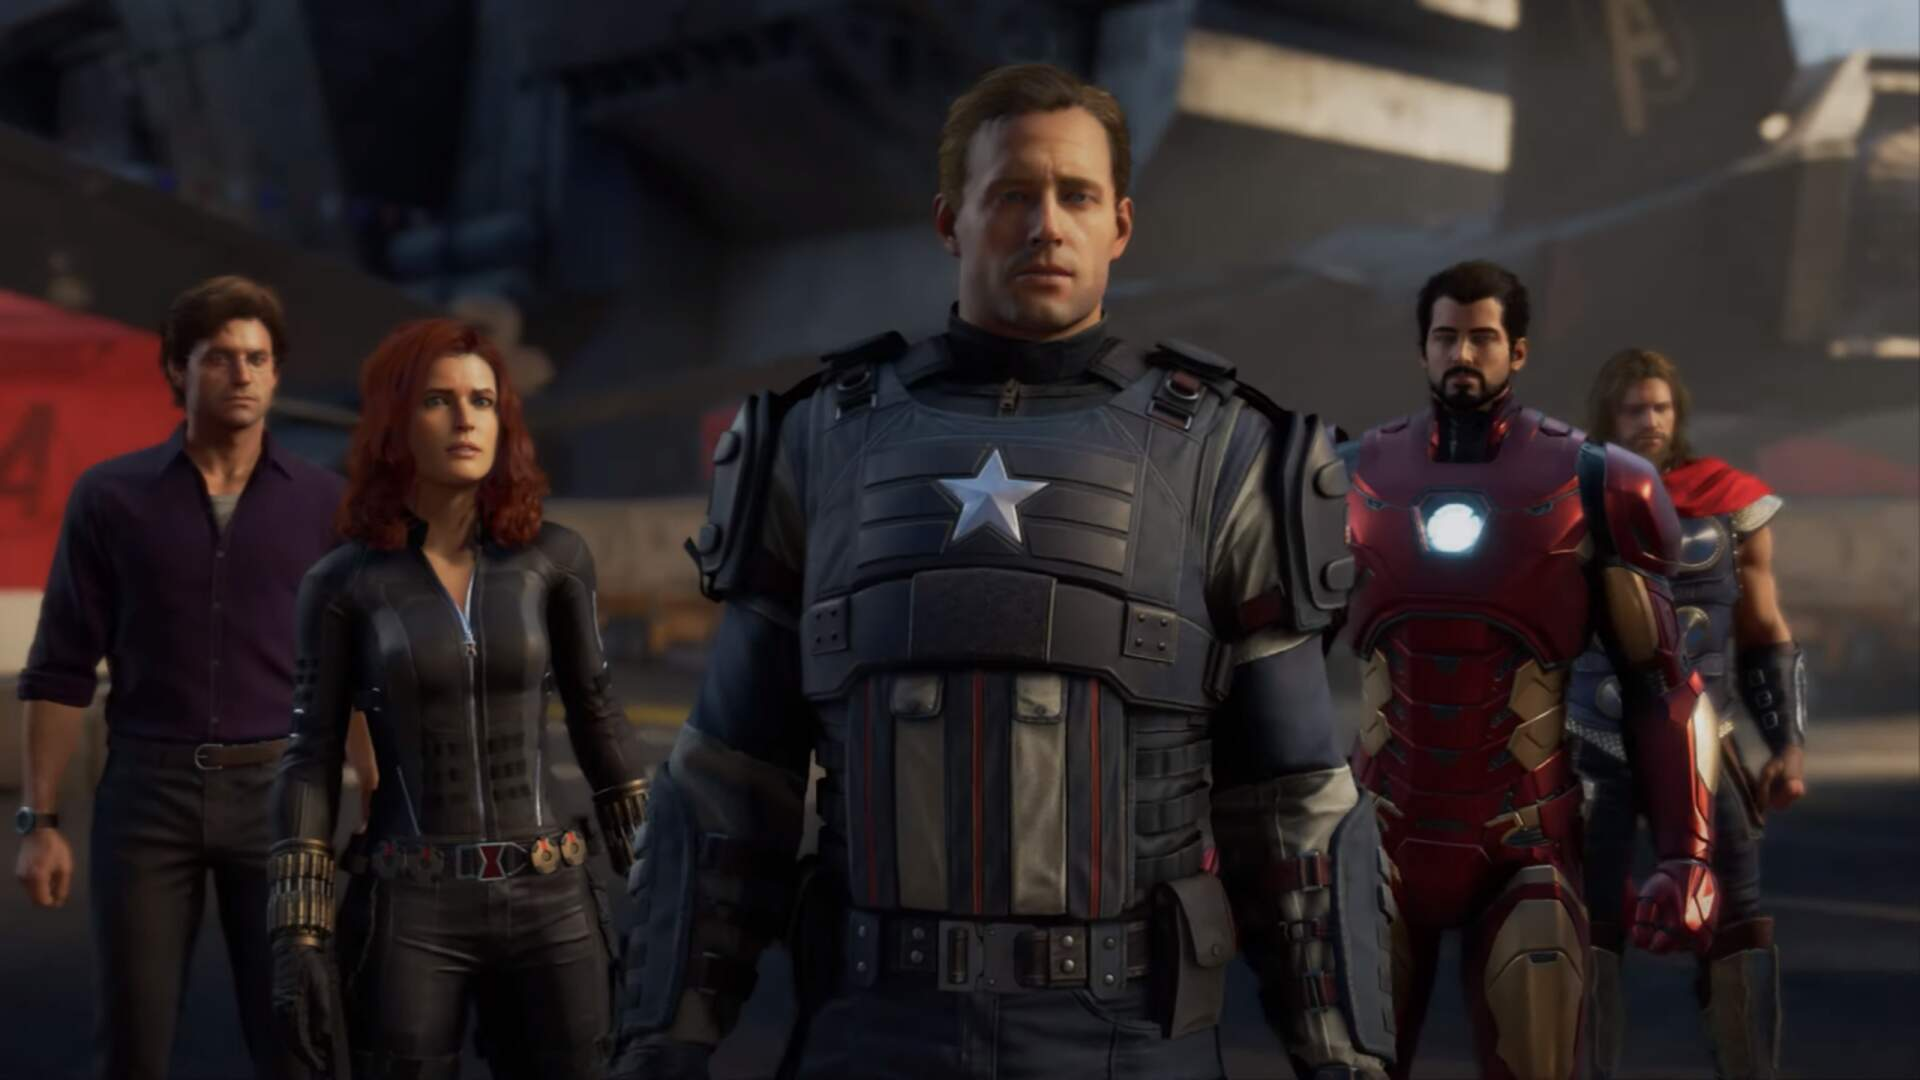 Square Enix Shows First Look at Marvel's Avengers, Coming May 2020